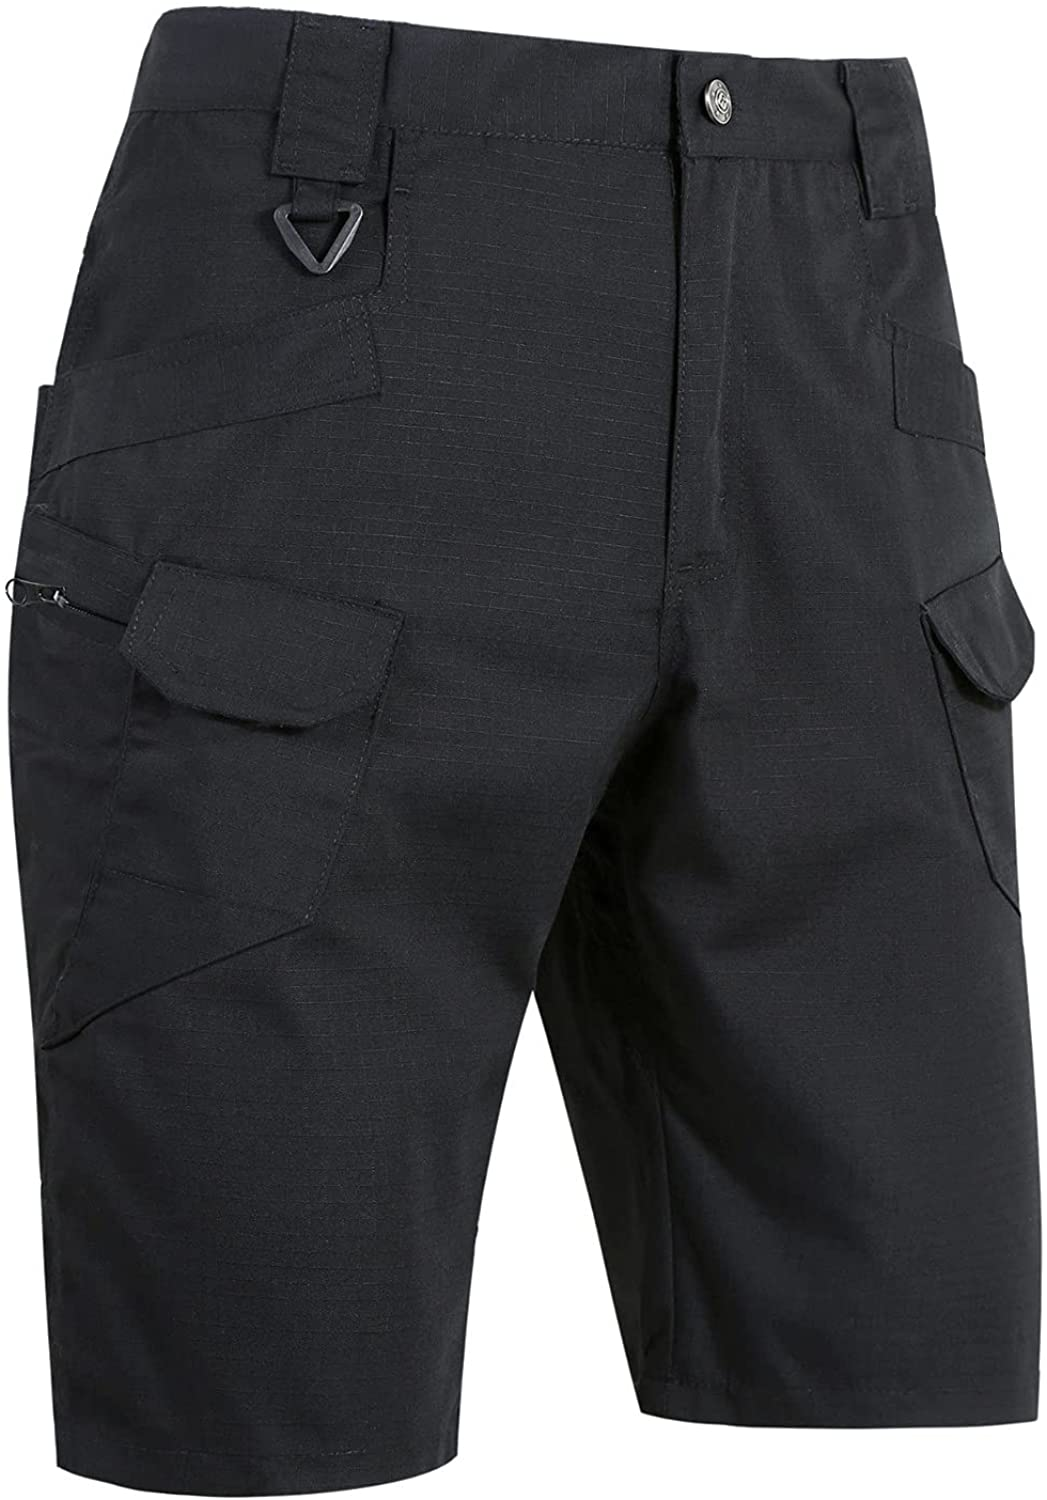 Pinpn-Msa Men's Award-winning store Limited time sale Outdoor Waterproof Hiking Shorts Quick Dry Tacti